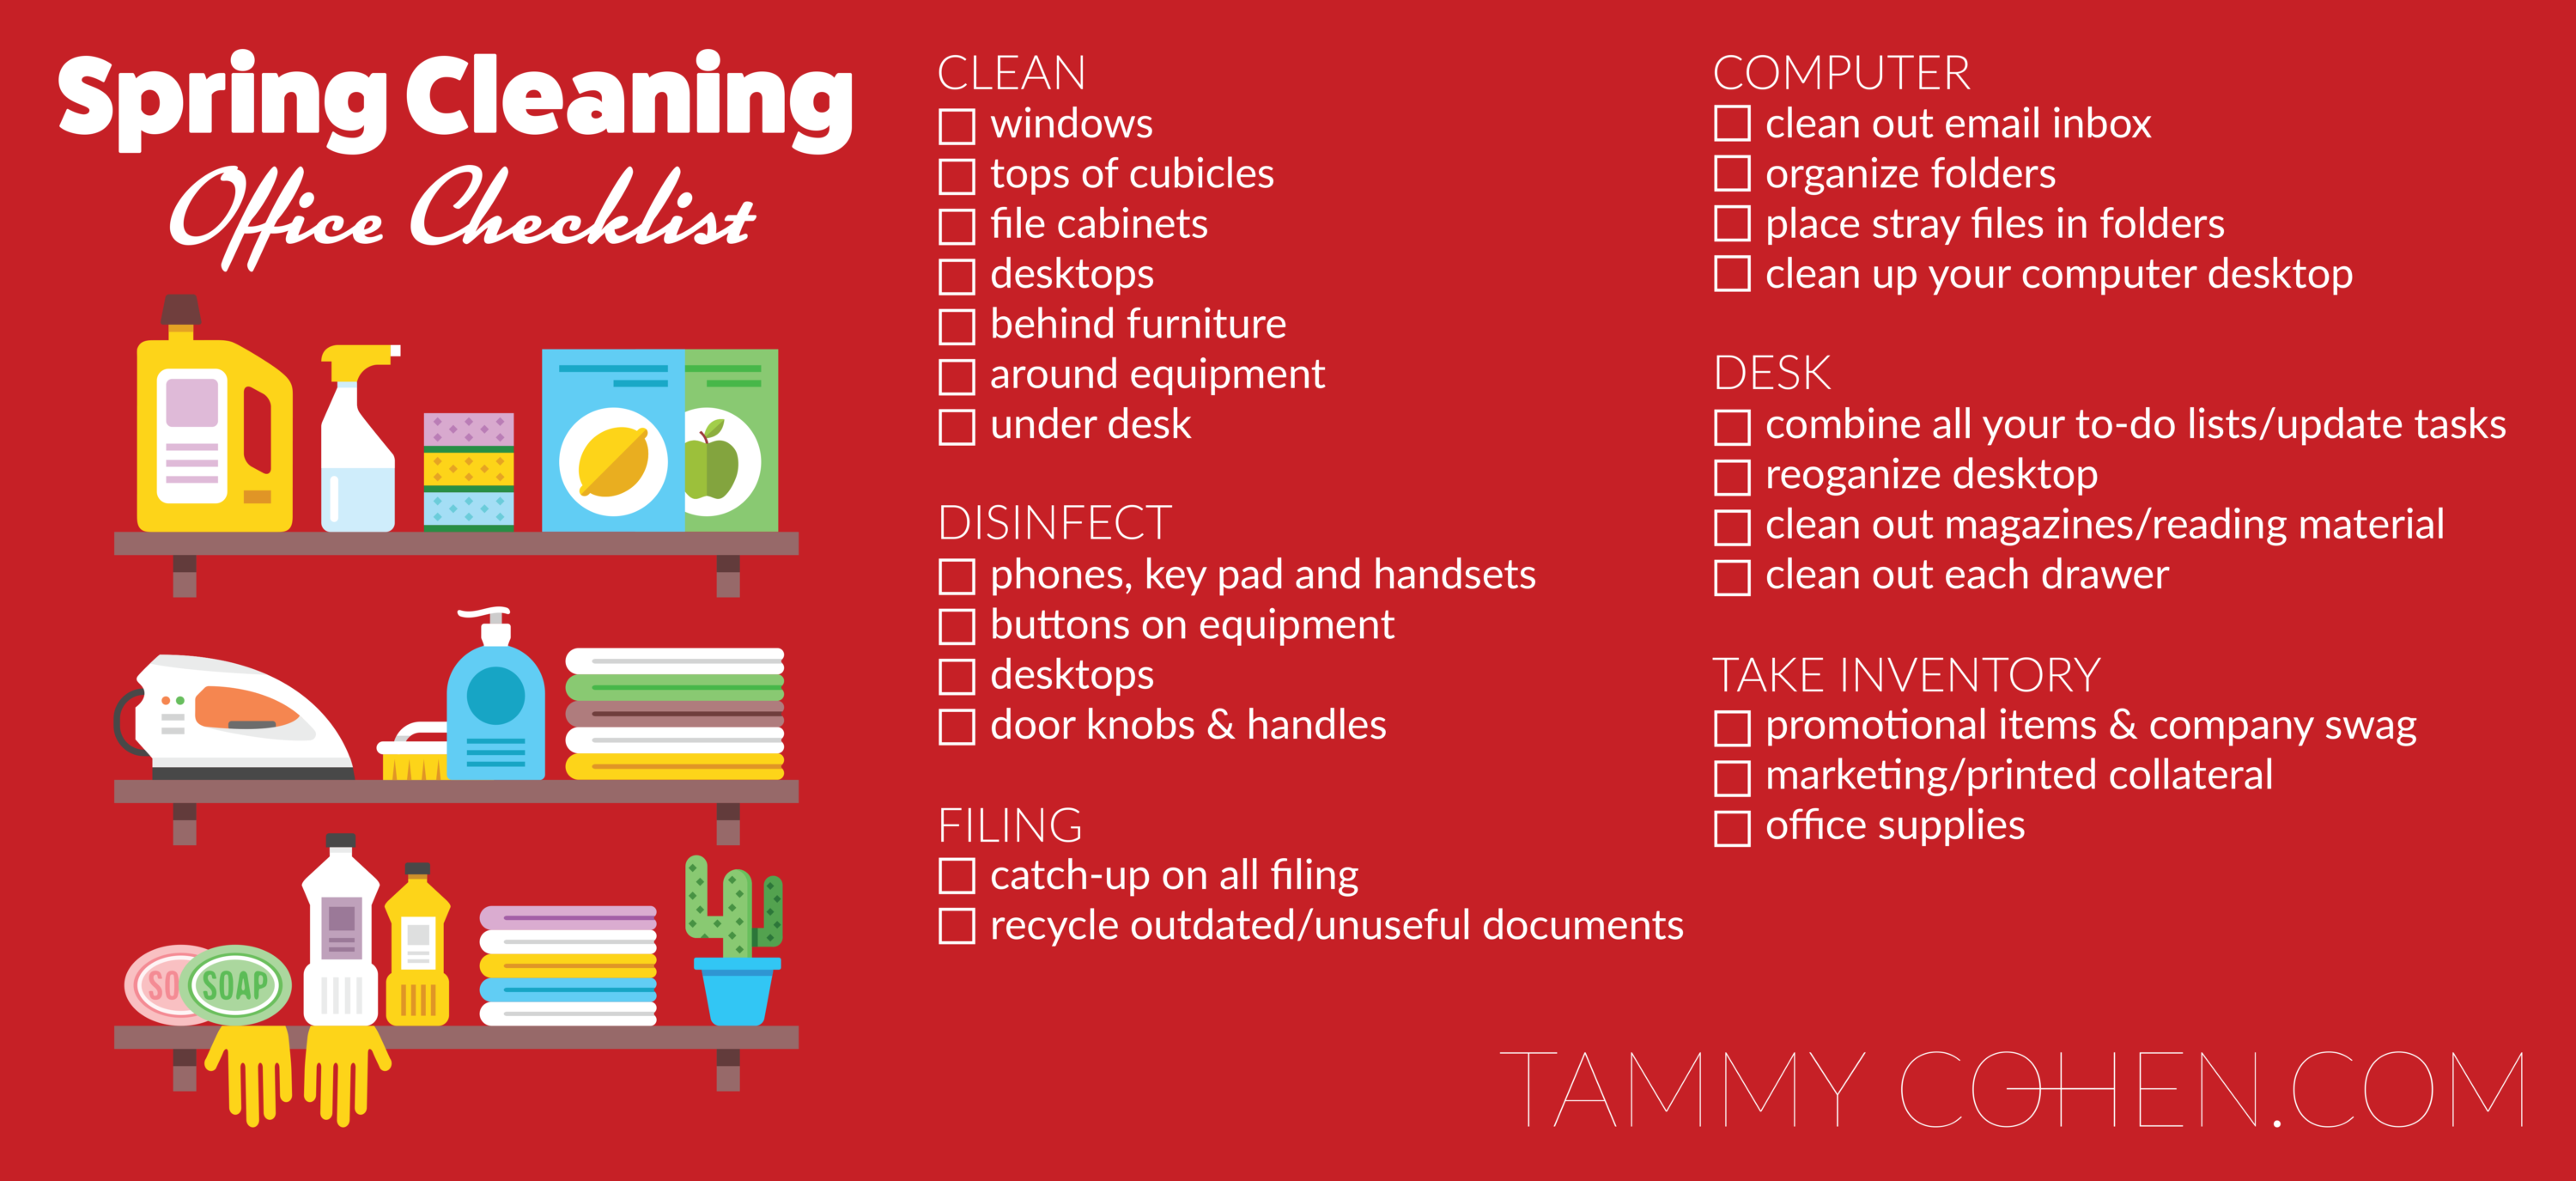 SpringCleaning-Checklist